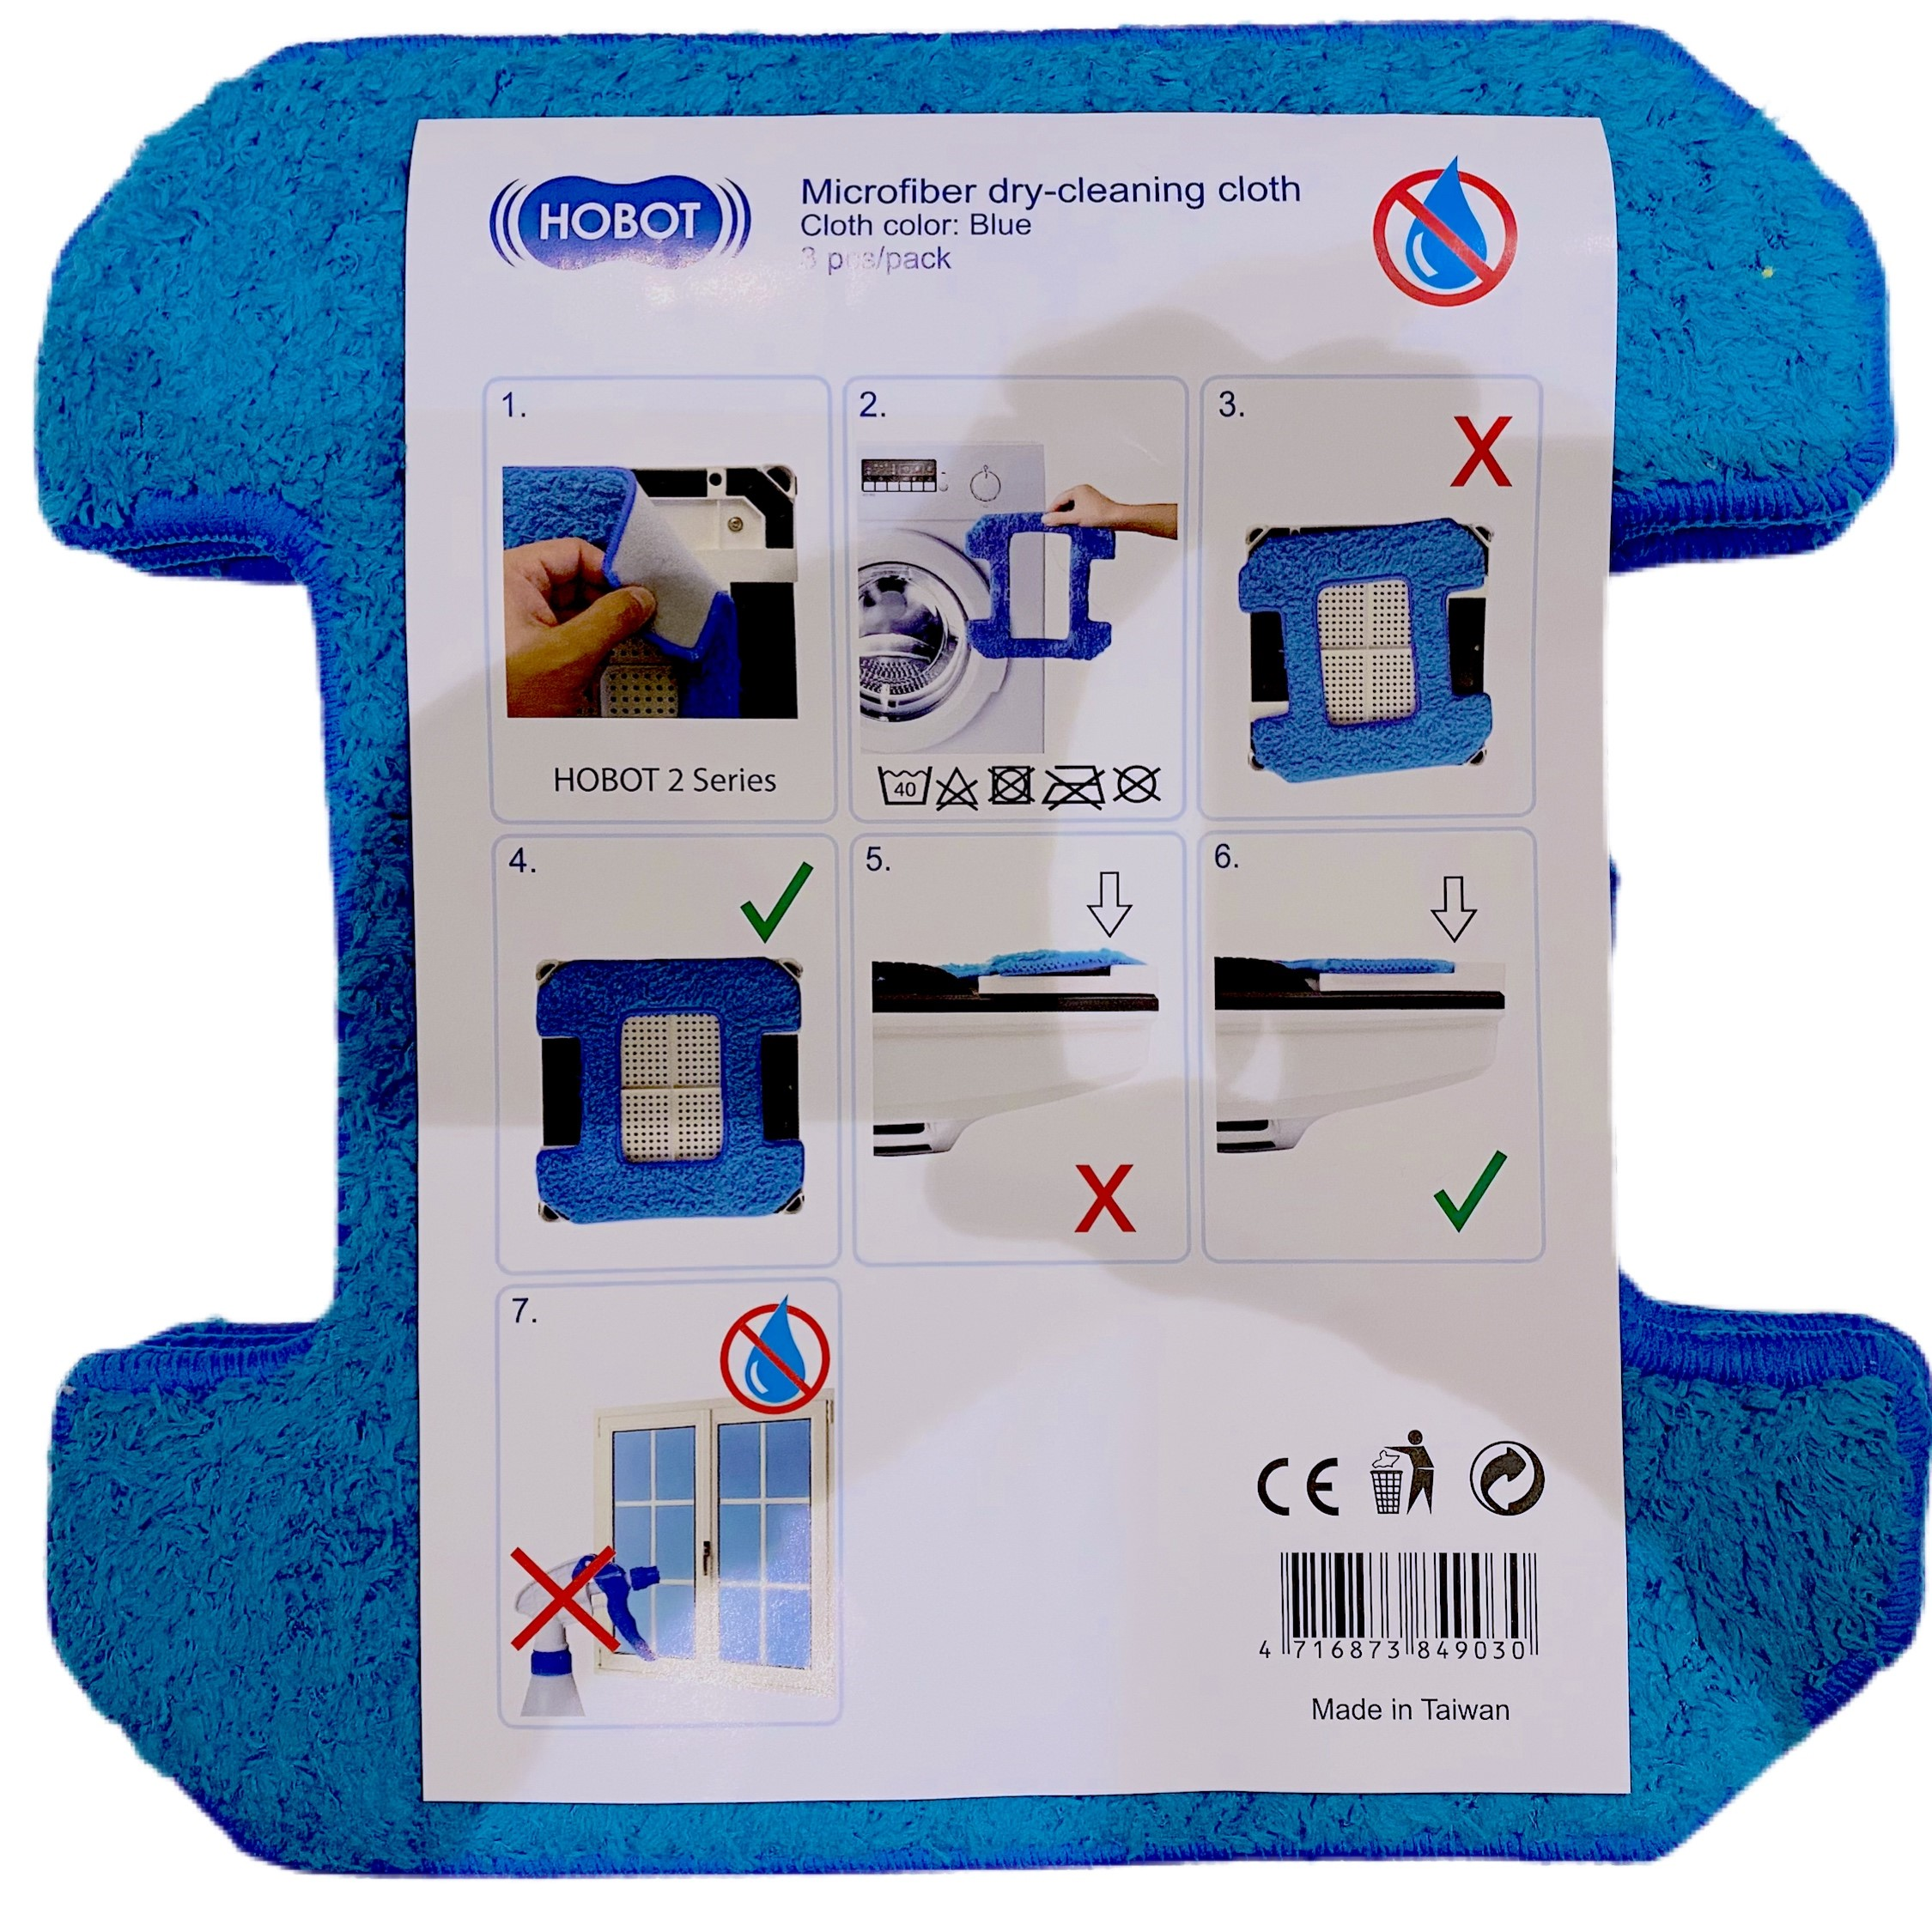 Hobot dry cleaning cloth